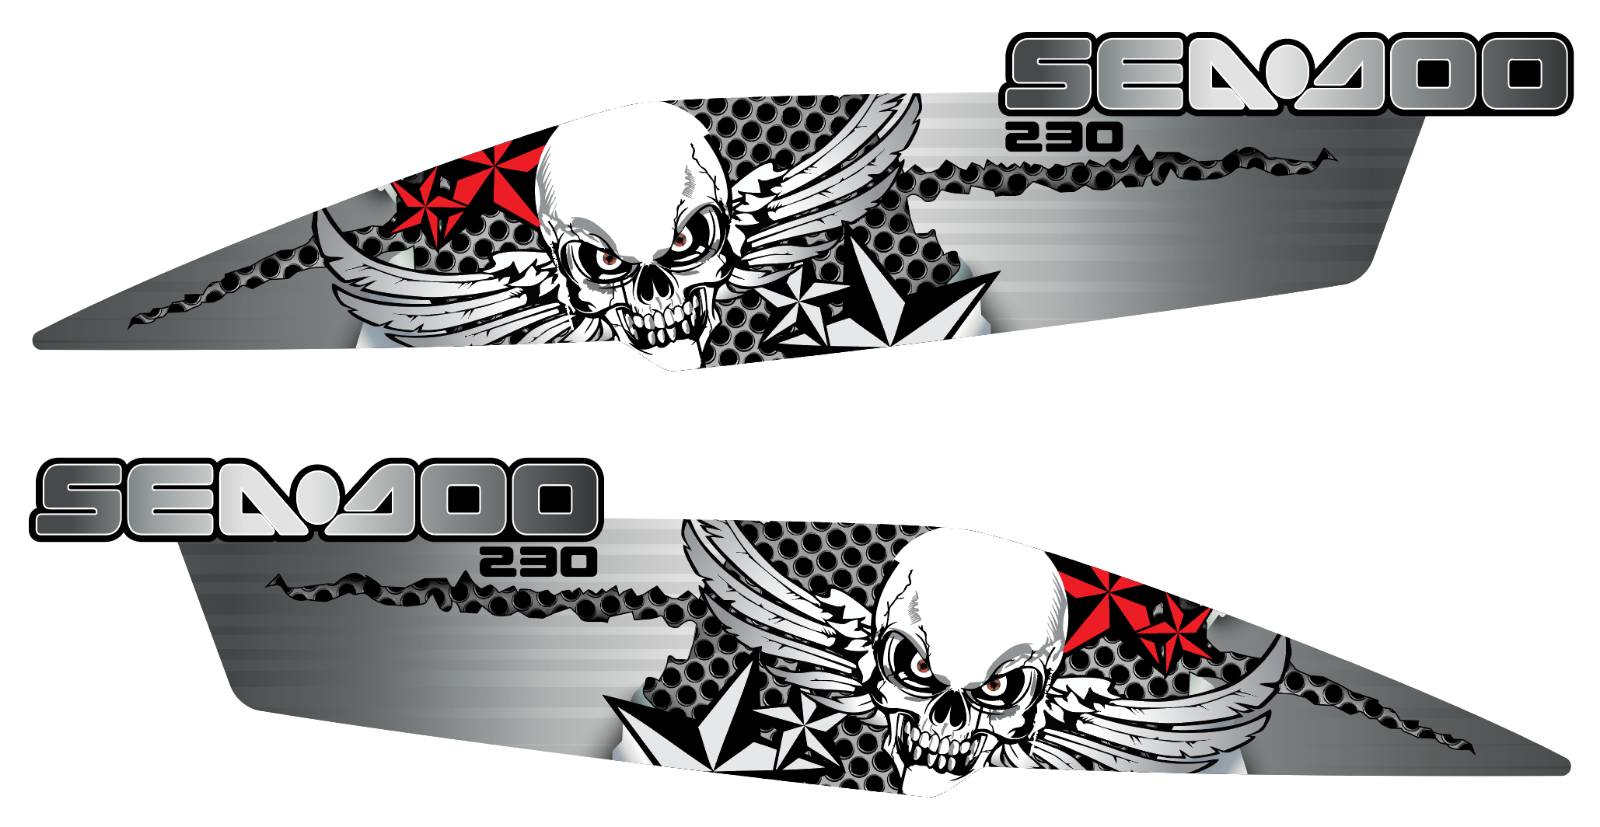 SEADOO WAKE 210 GRAPHIC KIT BPR CHALLENGER SE 21 STICKERS DECALS VYNYL WRAP SET